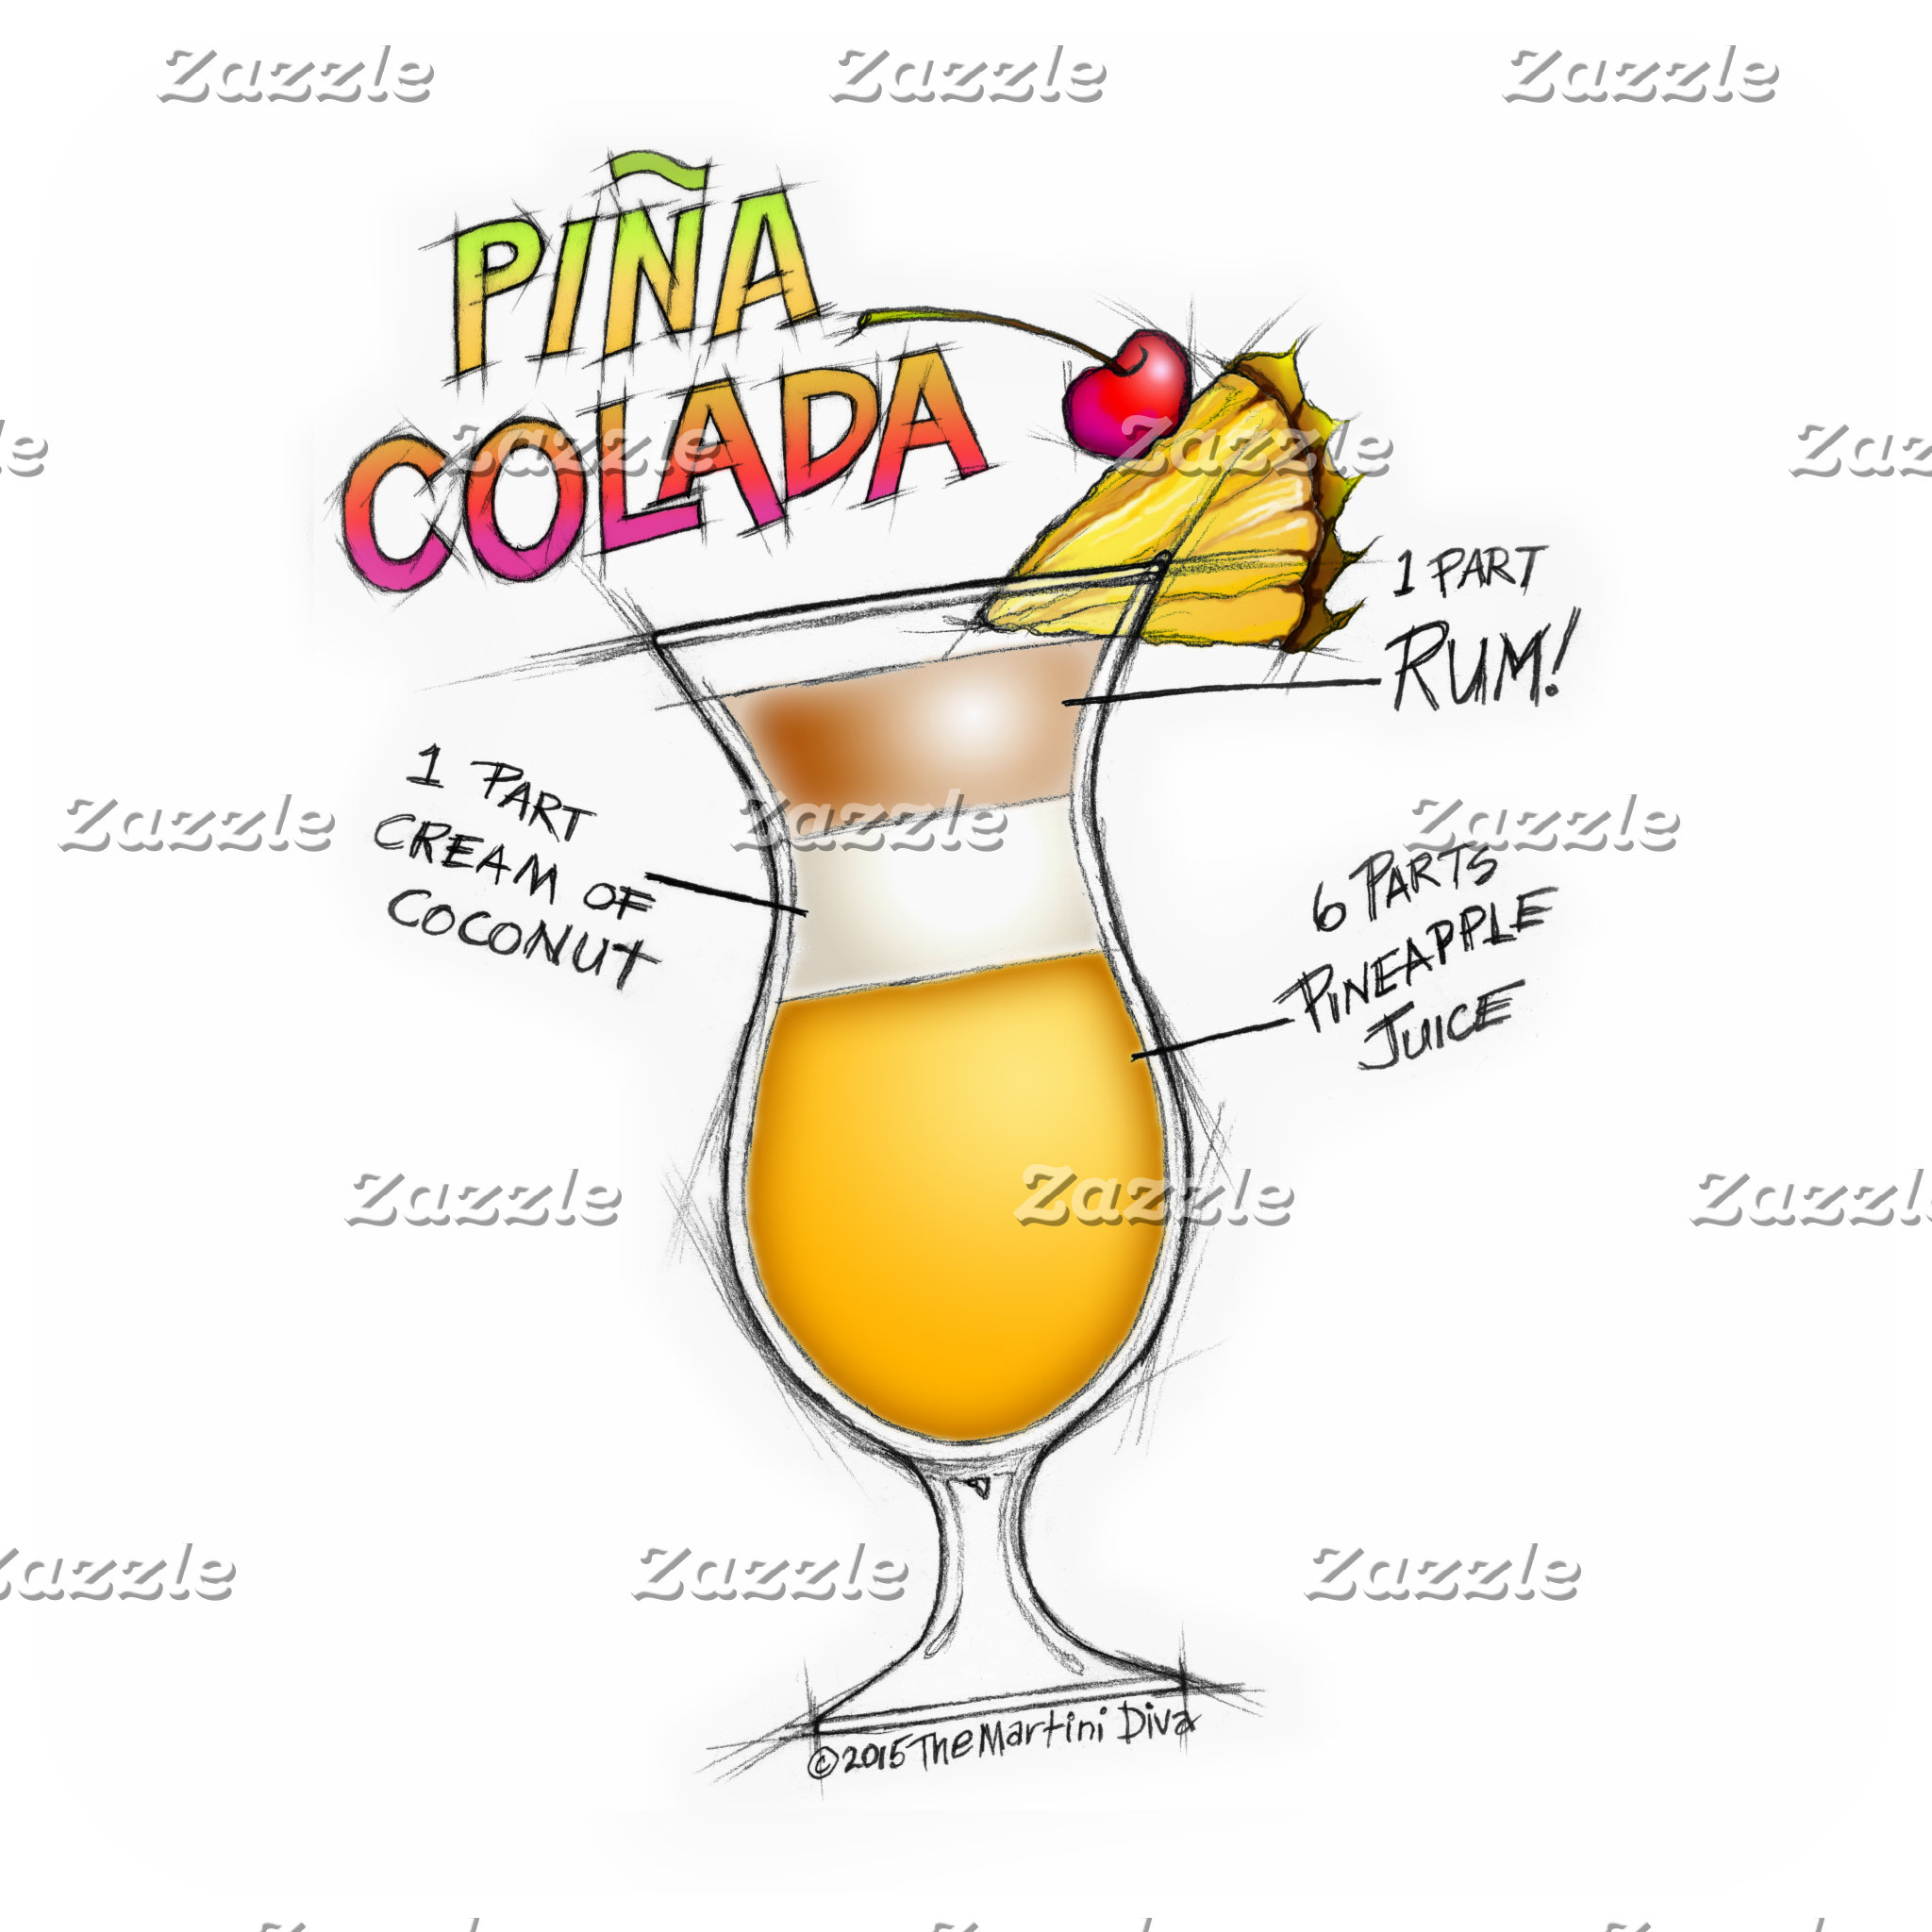 ac. PINA COLADA RECIPE COCKTAIL ART